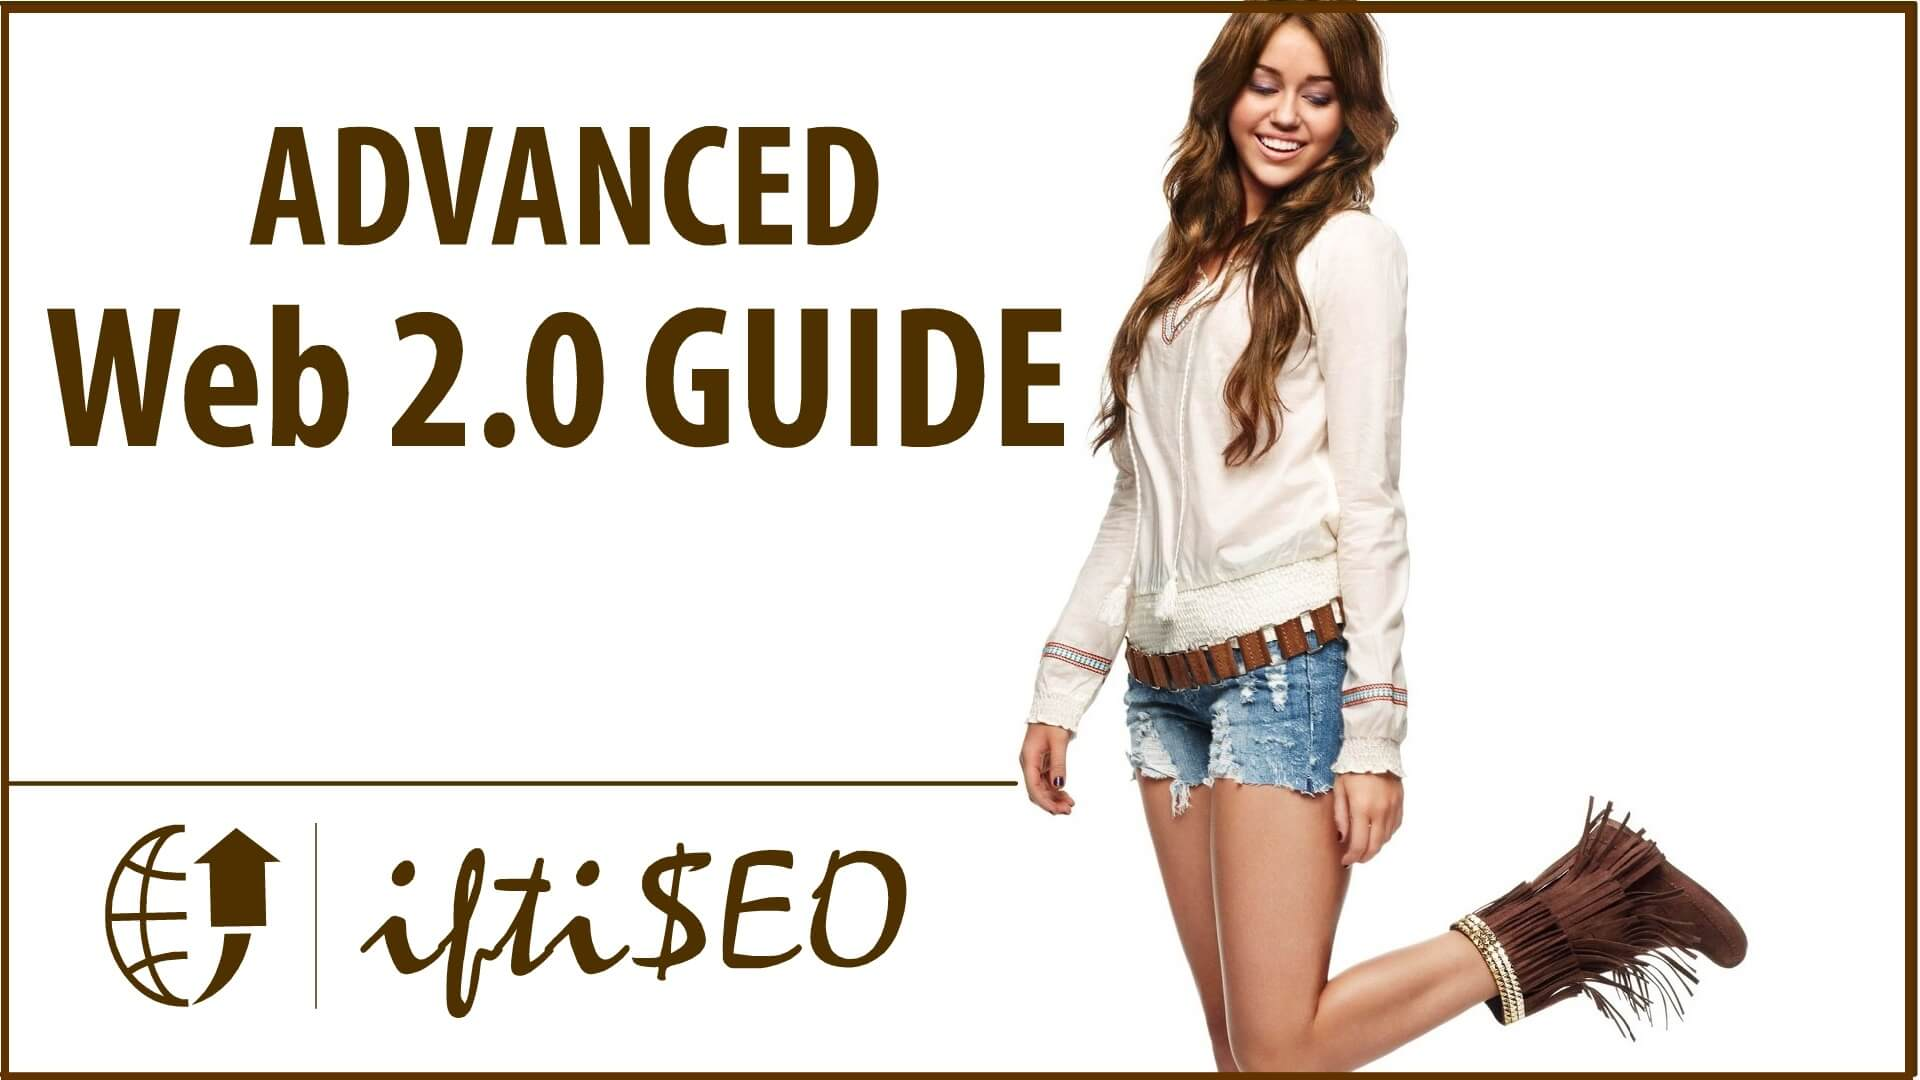 advanced web 2.0 guide